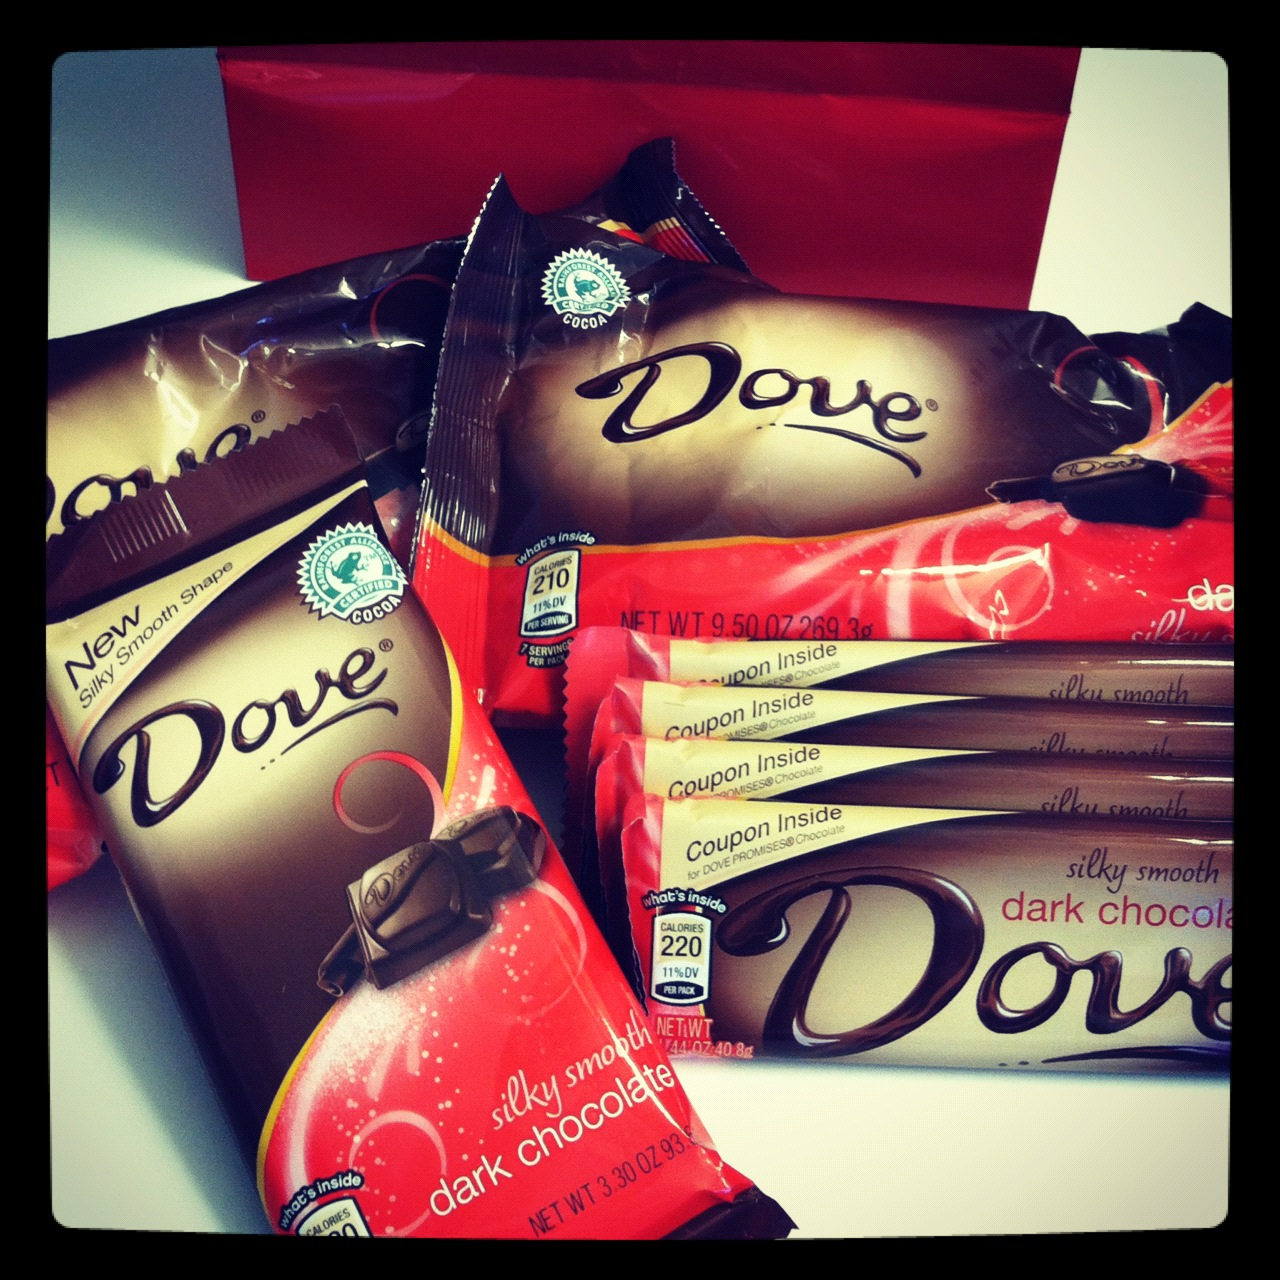 Food, product review and FREEBIES - Win Dove Dark Chocolate - food ...